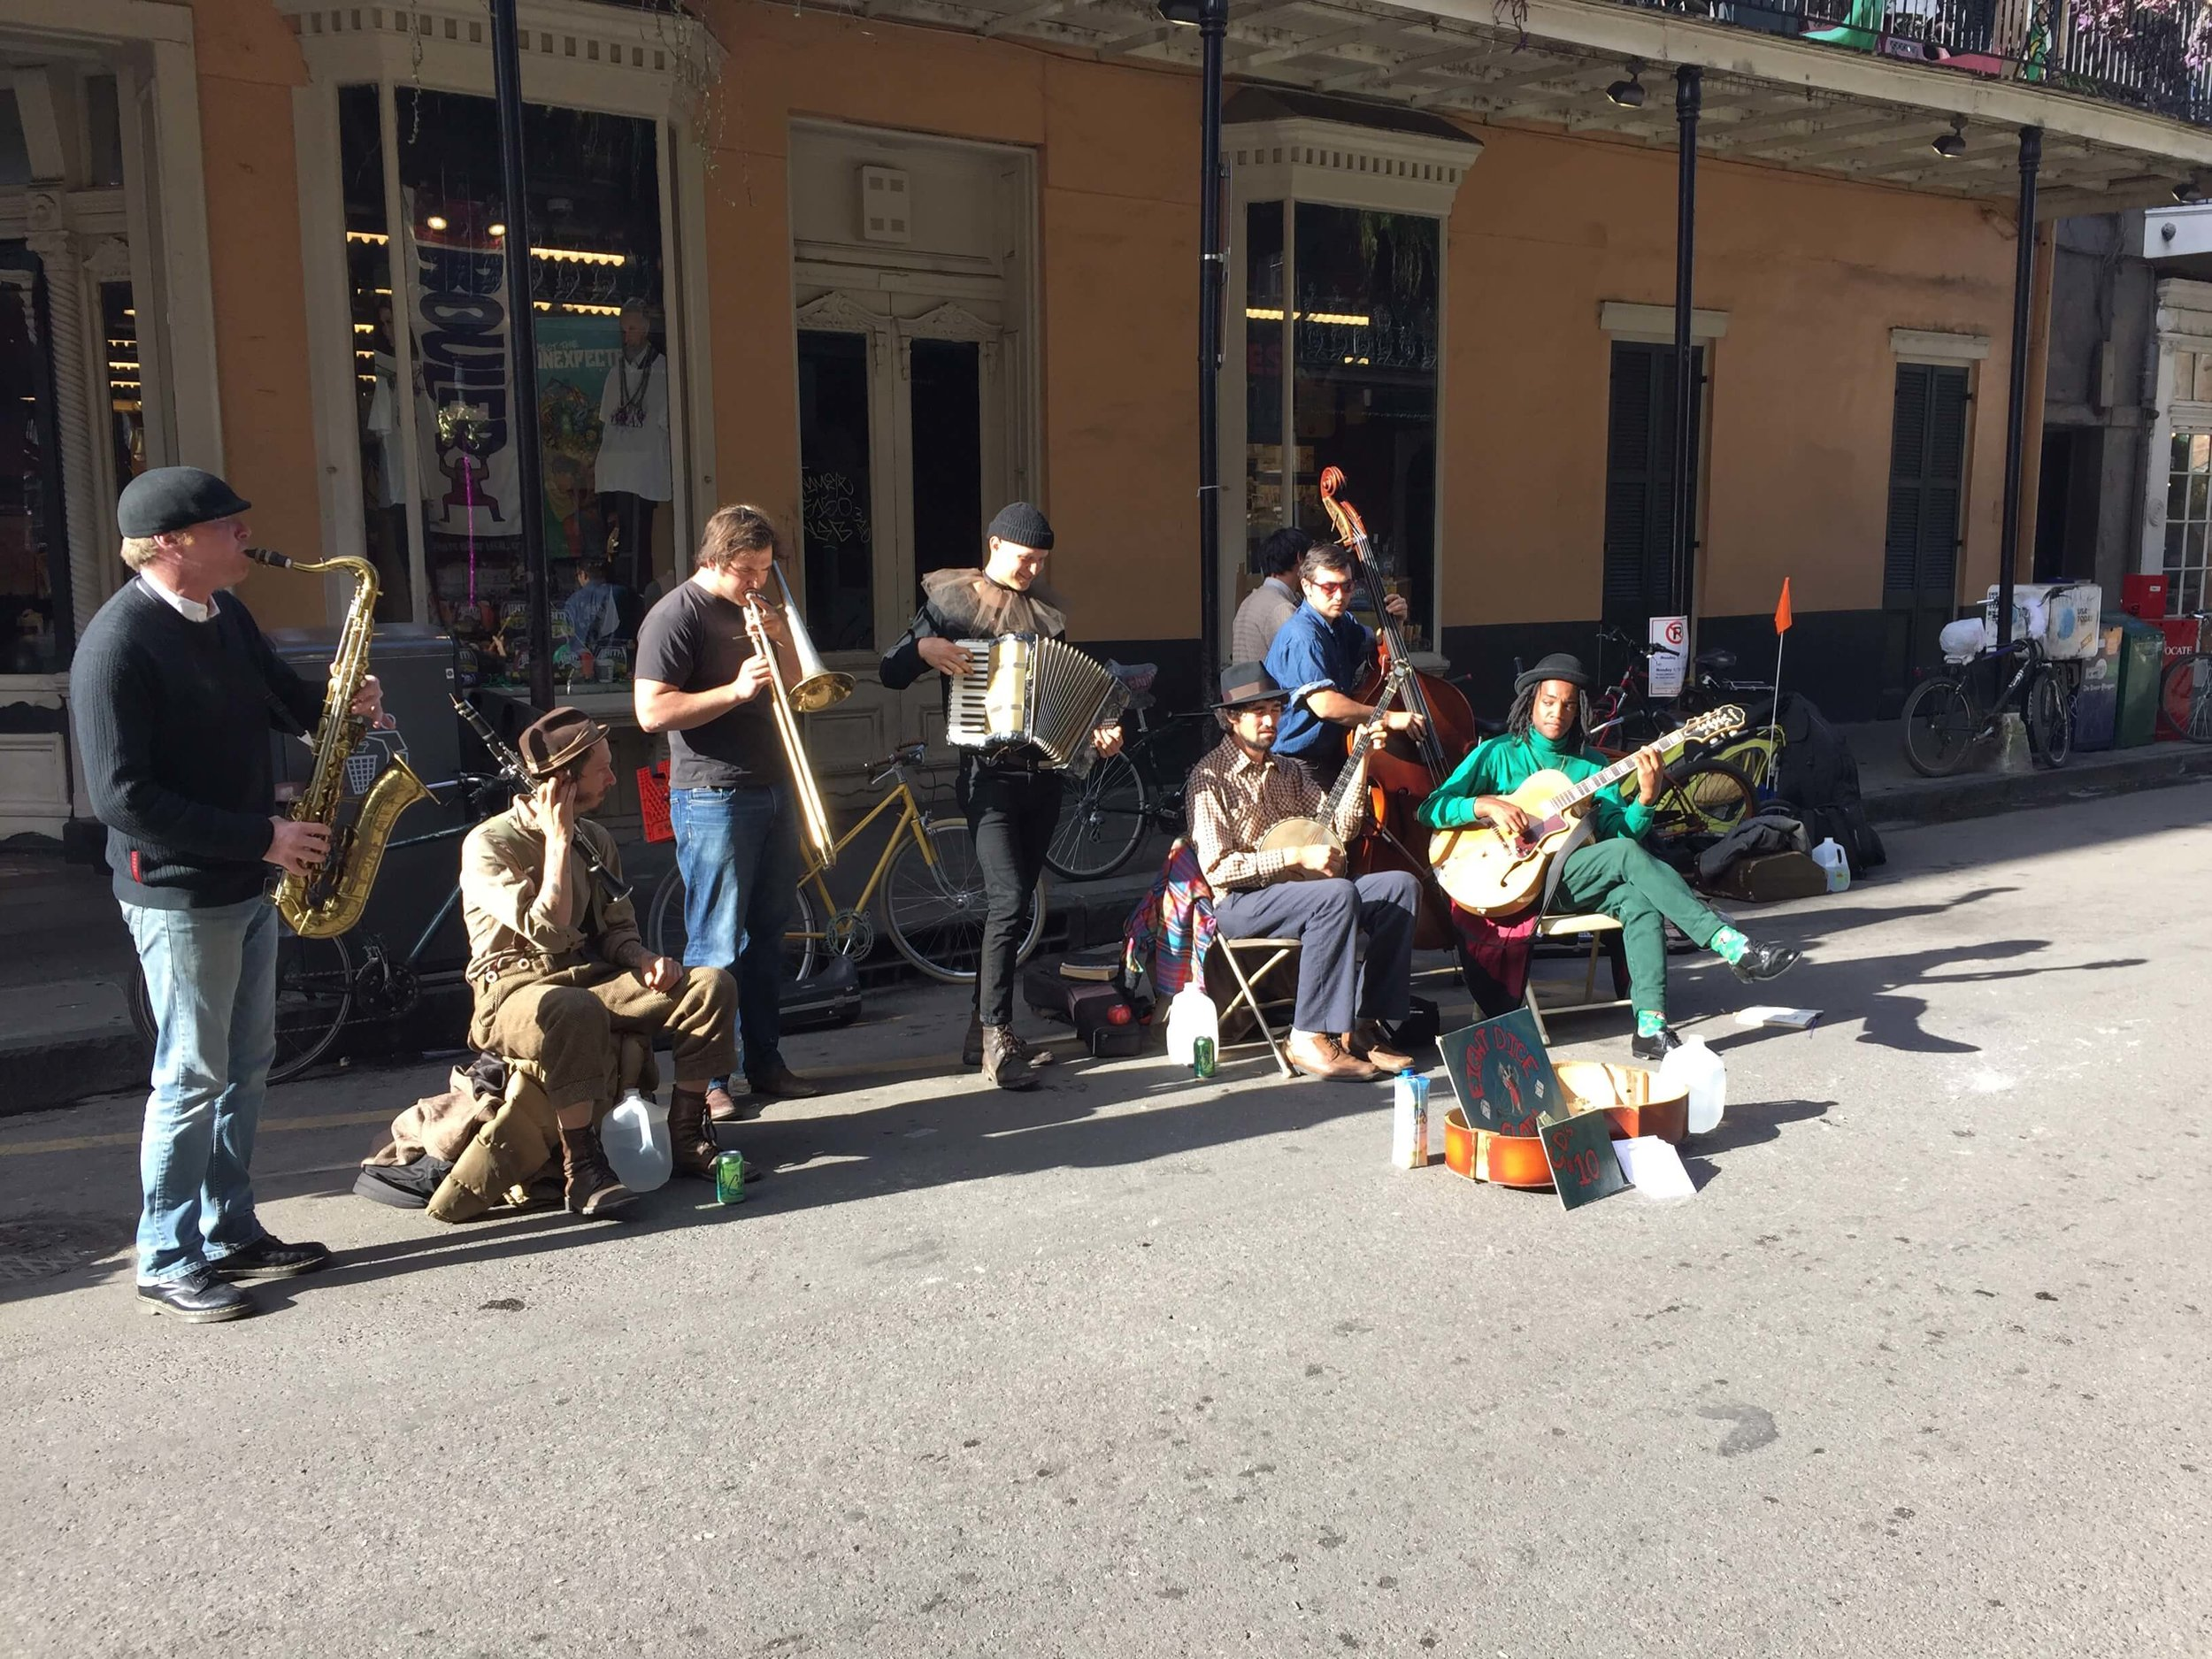 Street Performers in the French Quarter